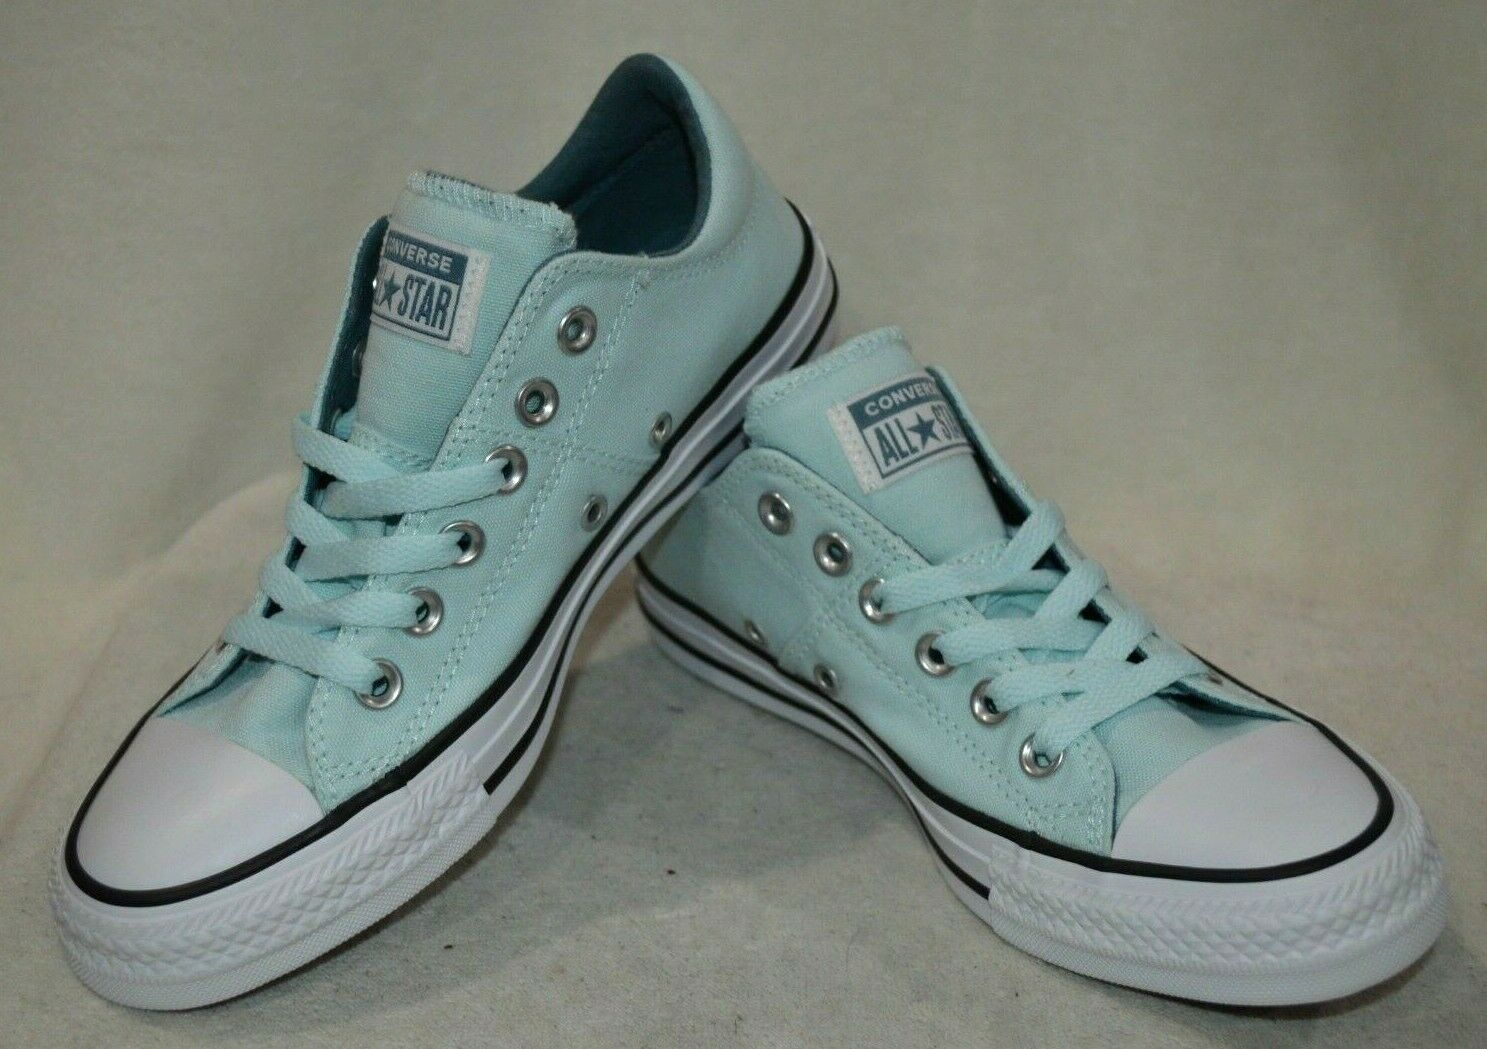 Converse Femme All star Madison OX TEAL Tint C-Teal Baskets-Sz 7 new with box 563507 F